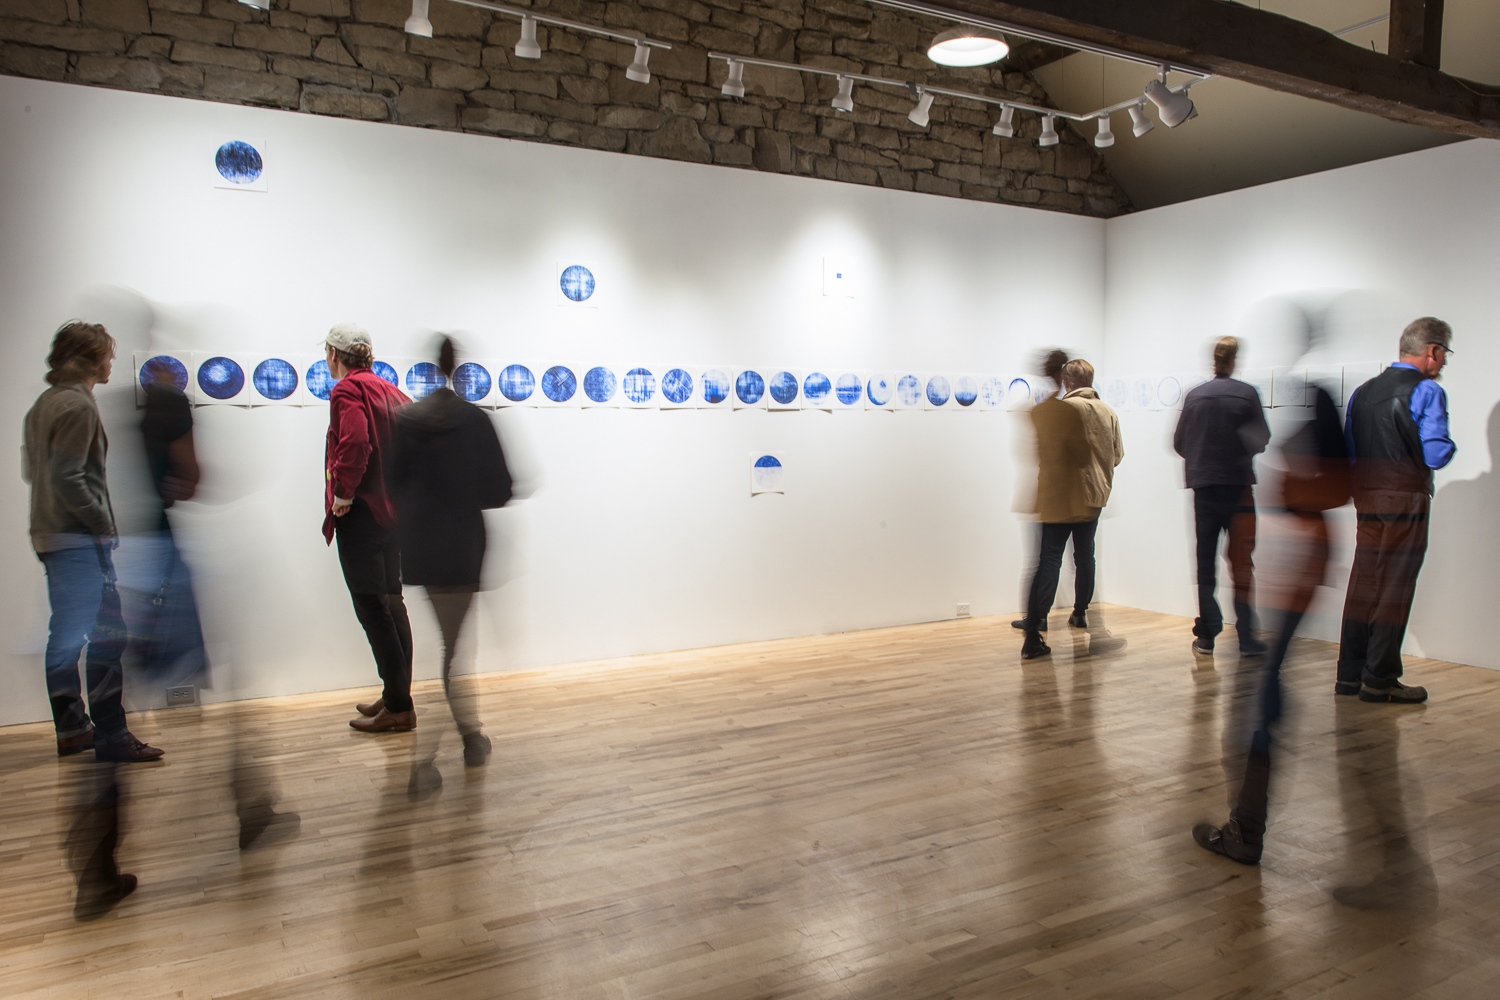 Solo Exhibition at The Granary Art Center and Artist Presentation at Snow College. Ephraim, Utah October 2016.